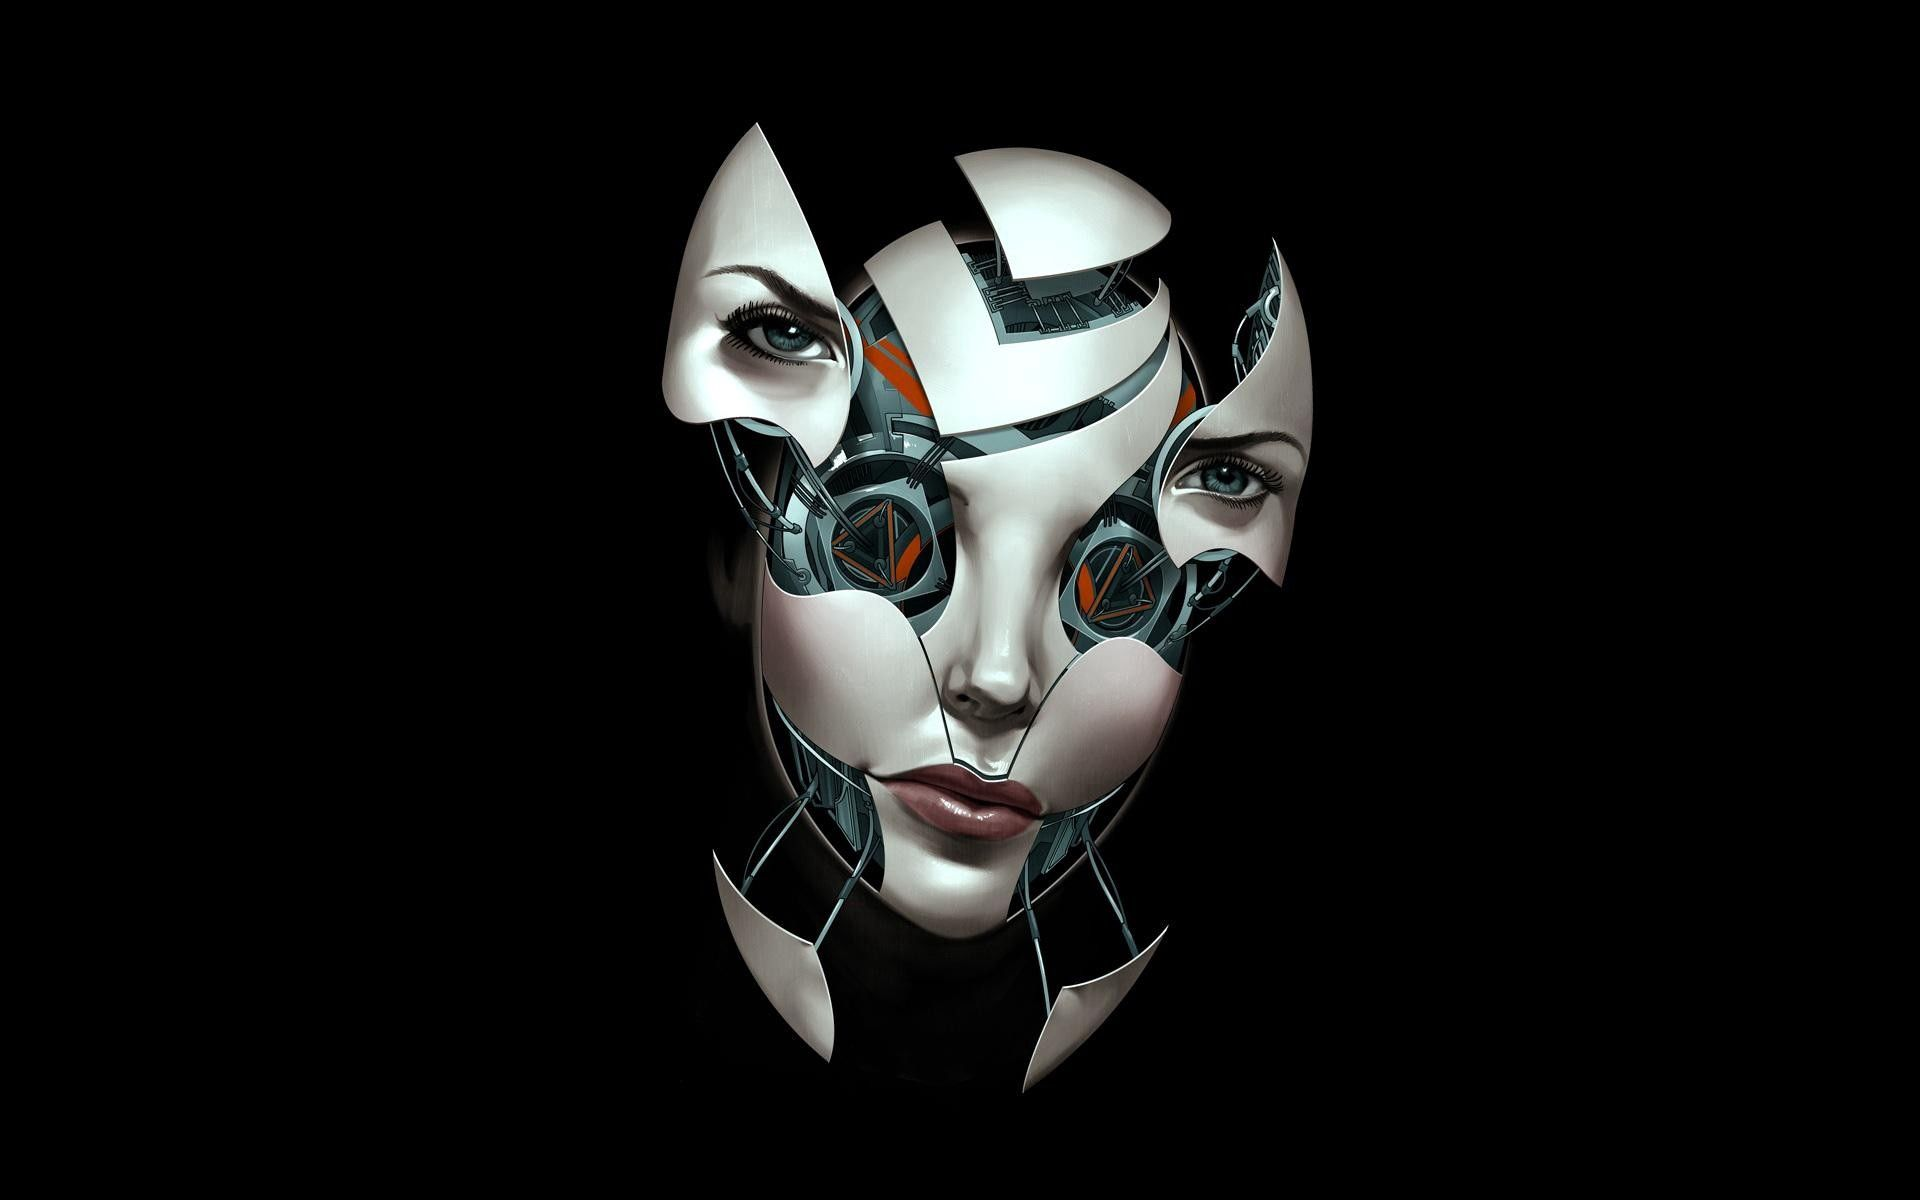 106381 Screensavers and Wallpapers Robot for phone. Download Abstract, Dark Background, Robot, Shards, Smithereens, Compound, Face pictures for free